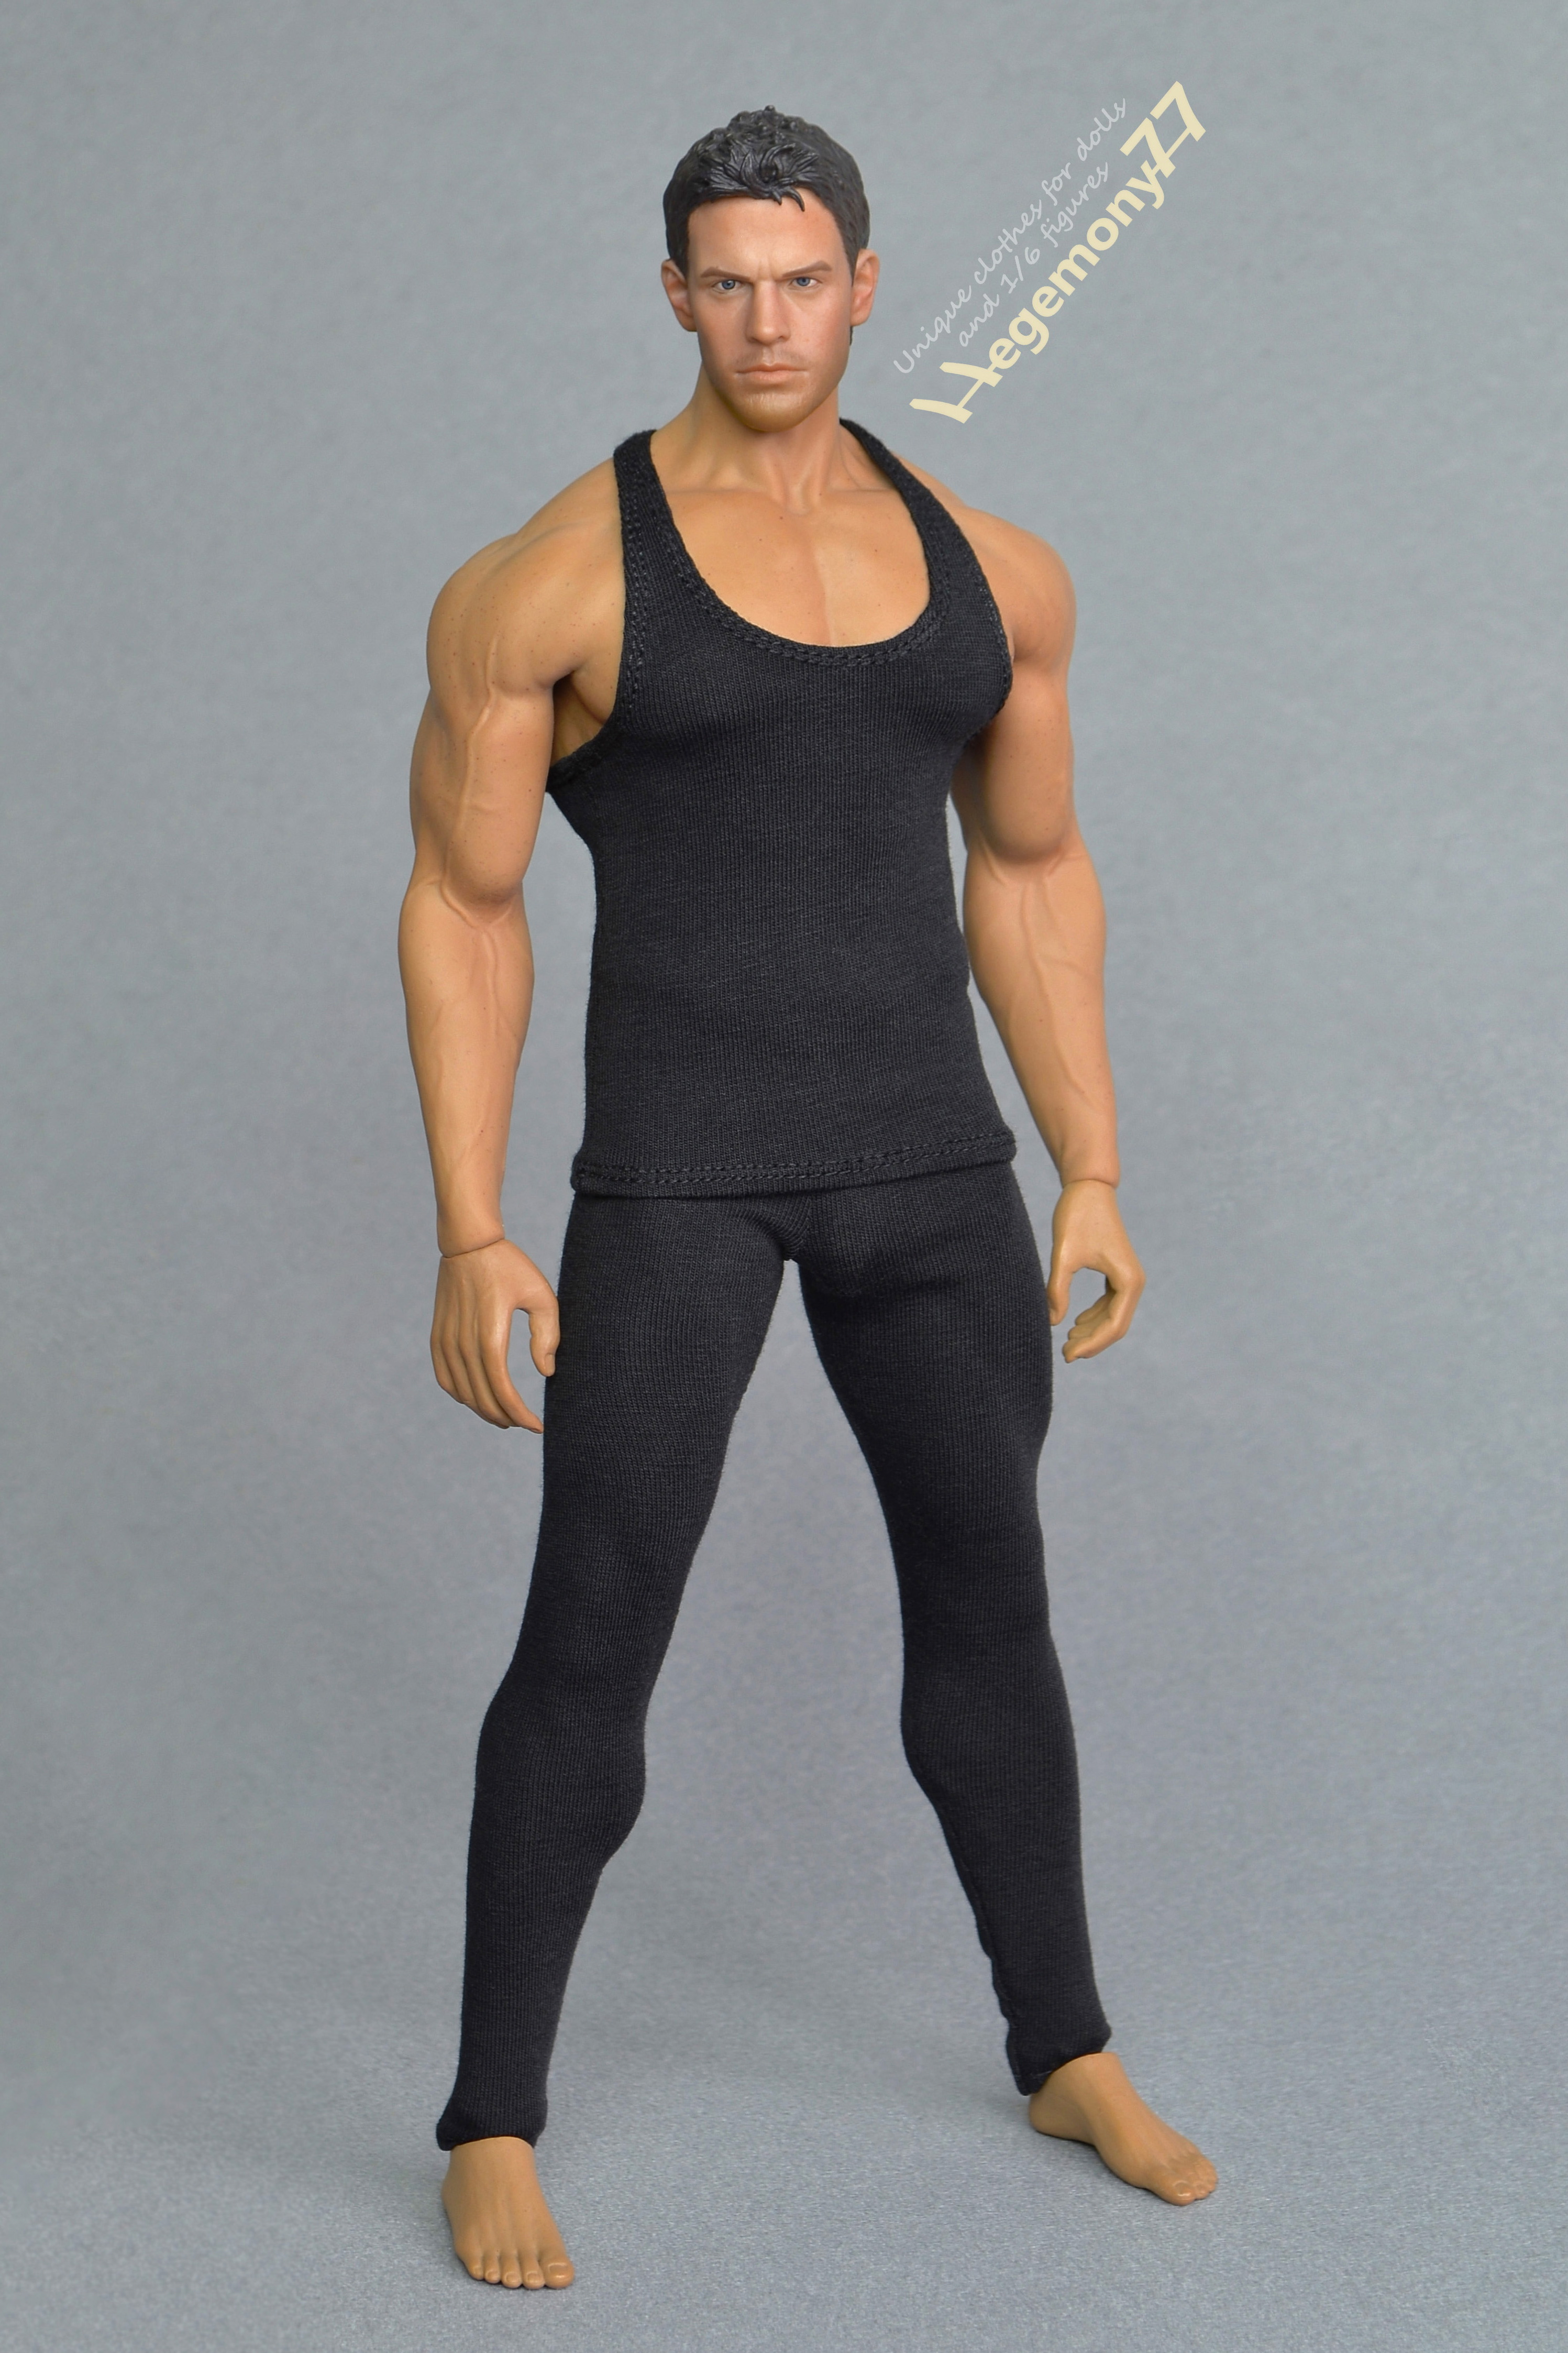 Phicen M34 muscular action figure doll body in 1/6th scale